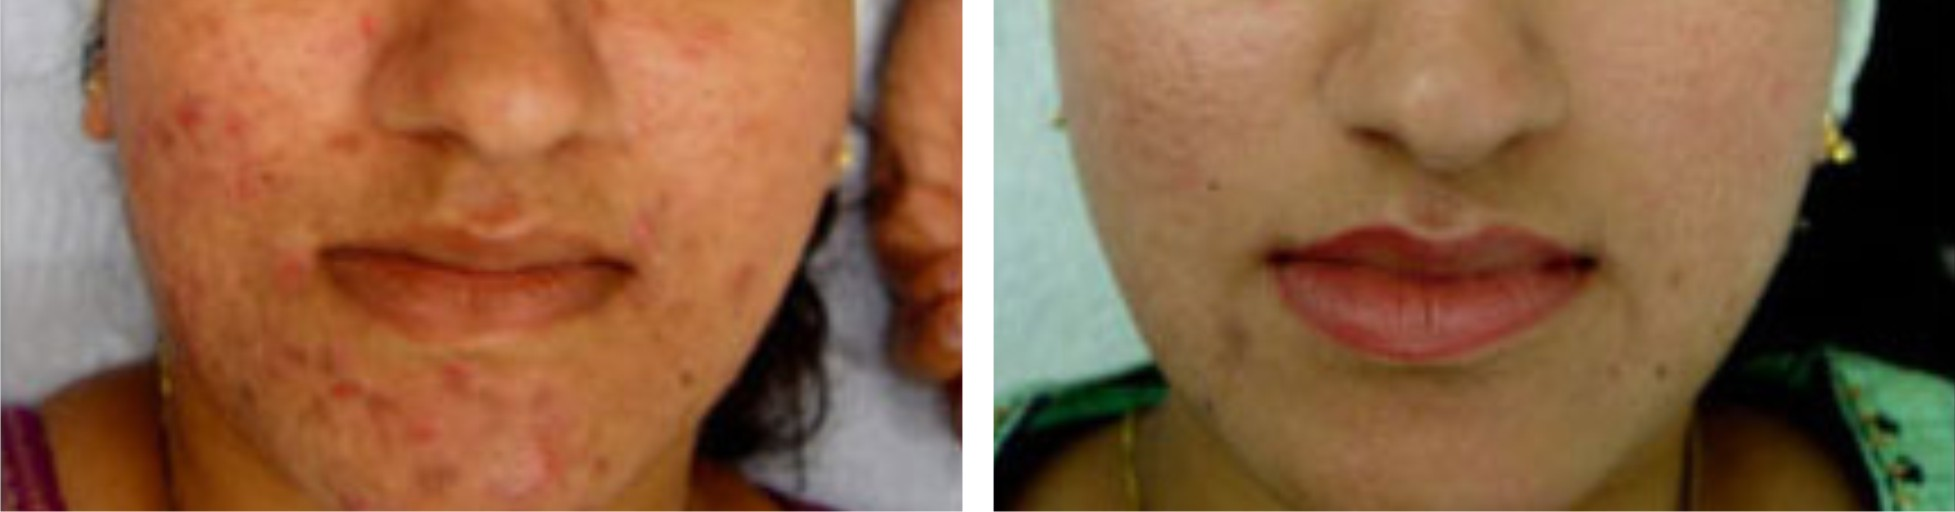 Microdermabrasion Image Two